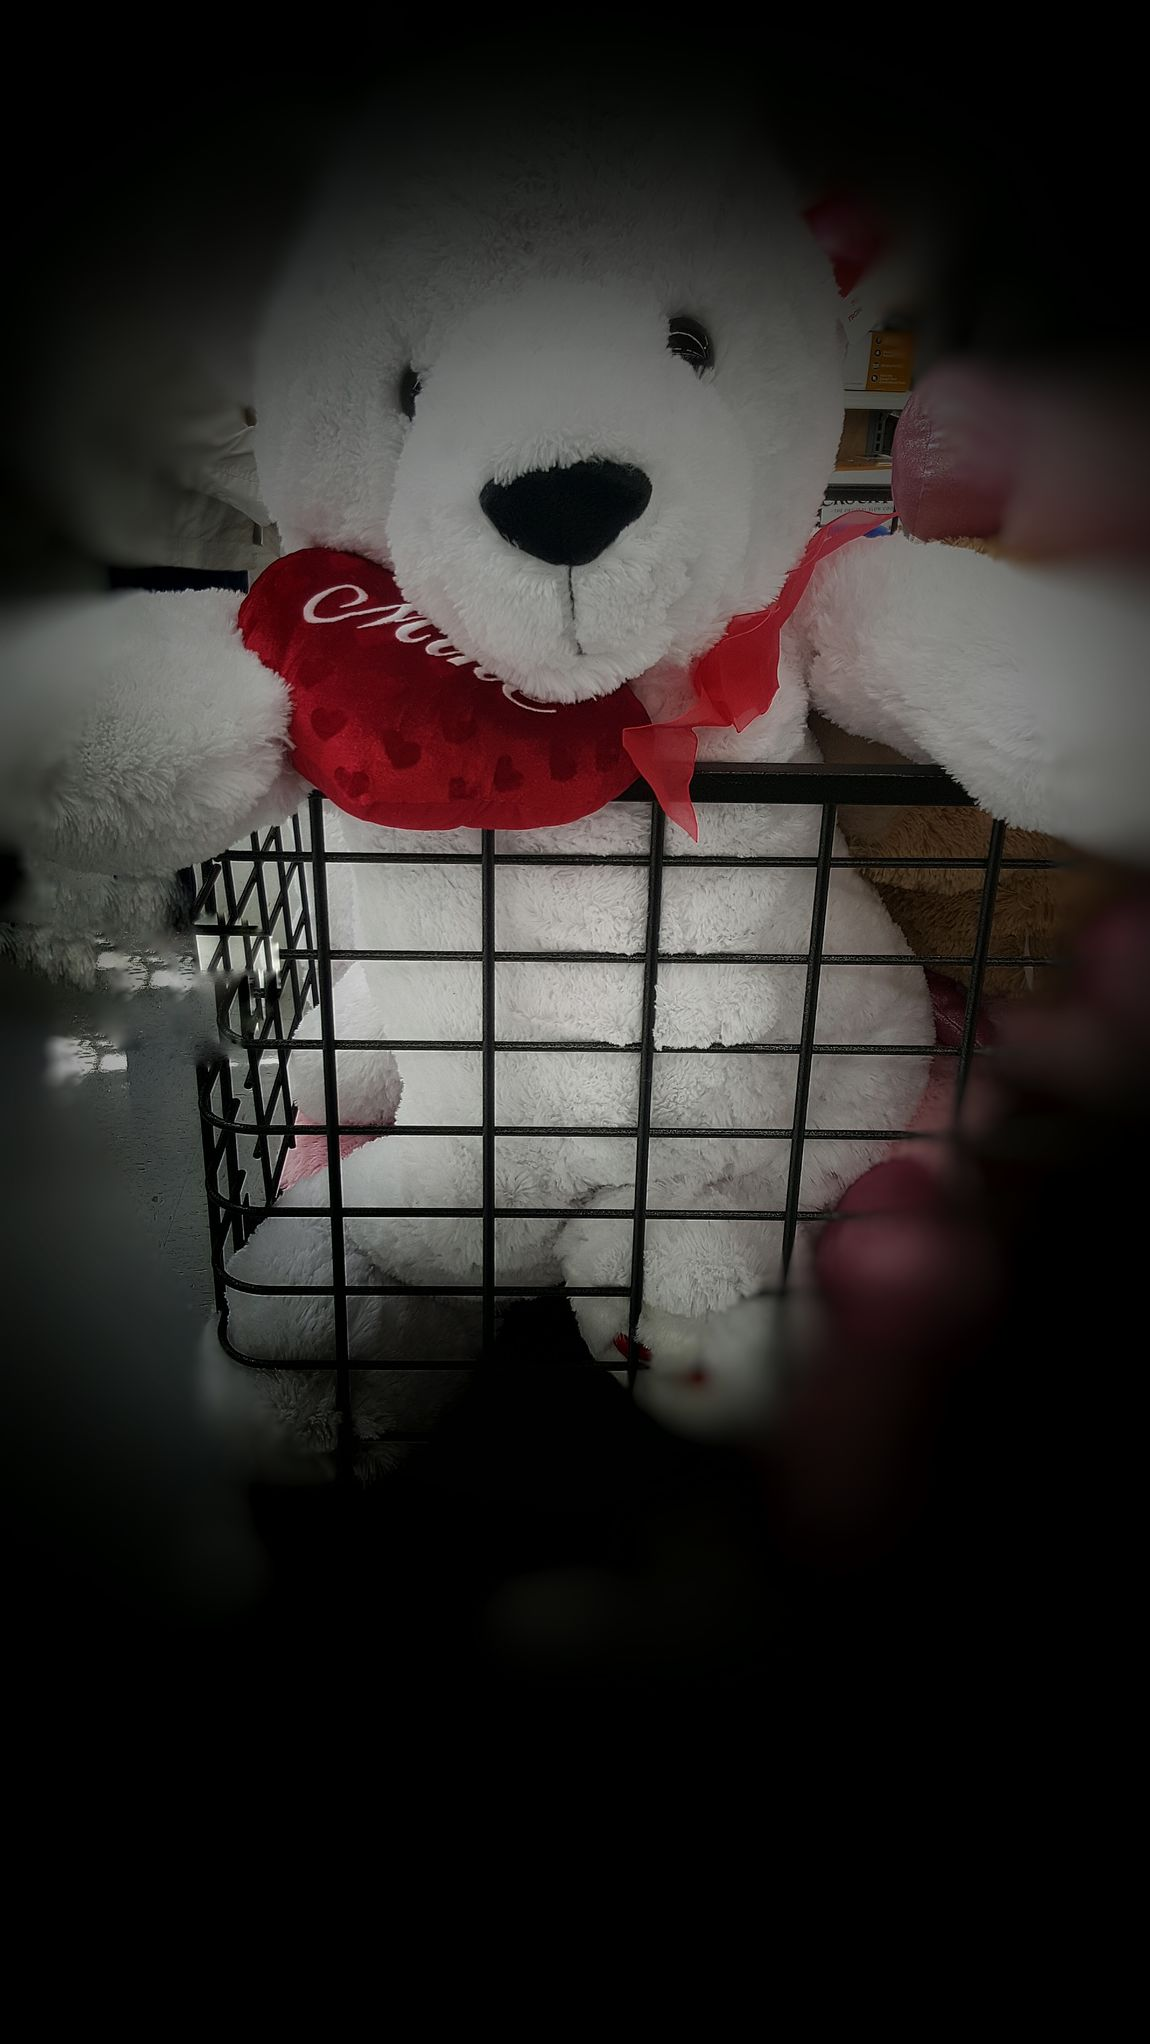 Showcase: February Teddy Bear 🐻 Animal Curtly Save The Teddy Bears Freedom! Caged Animals Caged Stuffed Toys Help Me !! Smile❤ Animal Photography Animal_collection Pets Of Eyeem Valentines Day Is Coming Love Is In The Air Buying A Gift